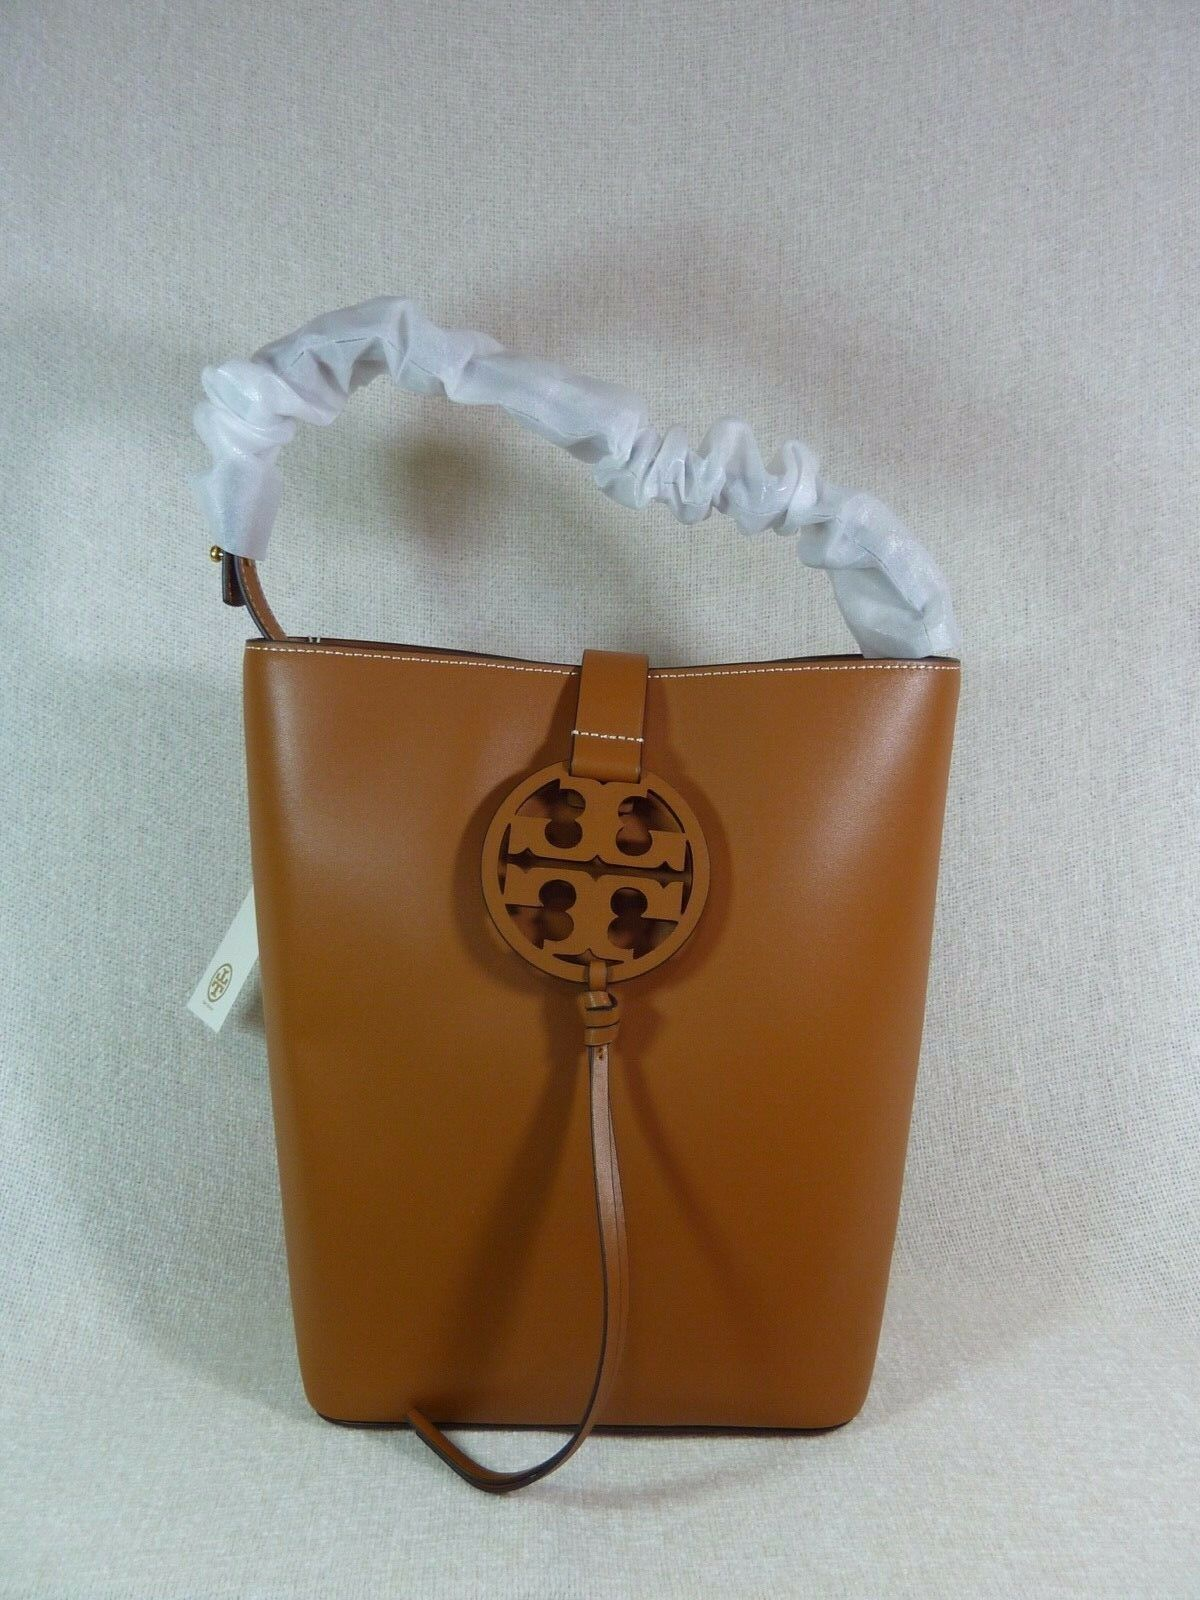 NWT Tory Burch Aged Camello Miller Hobo/Shoulder Tote $458 - Minor Imperfection image 3